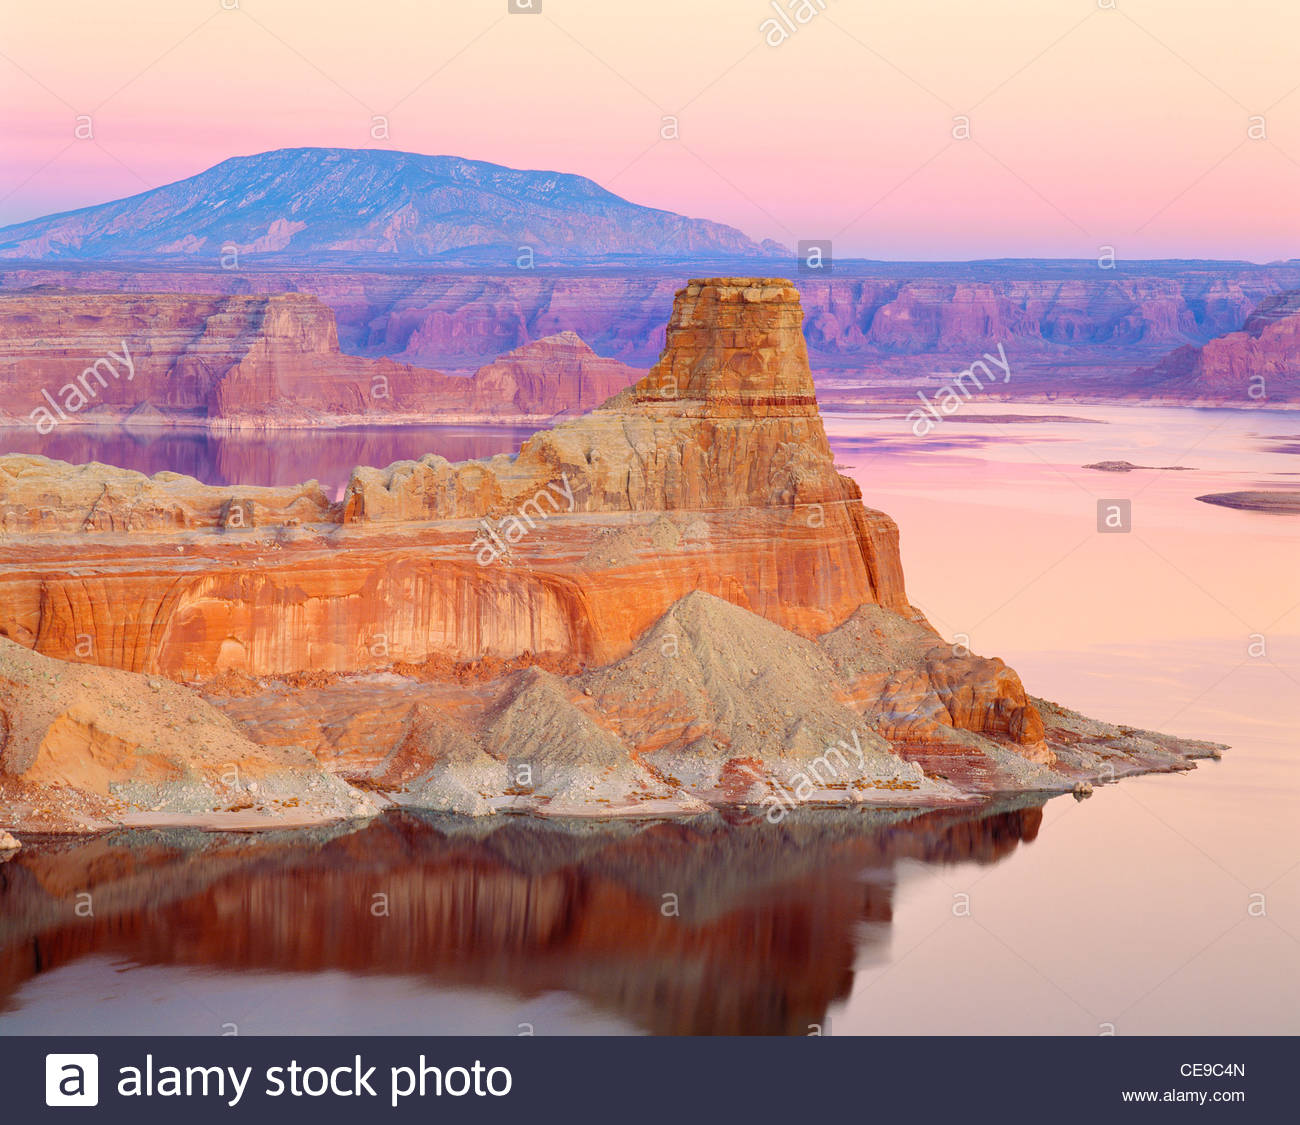 'Lake Powell' [Glen Canyon National Recreation Area] Utah Immagini Stock